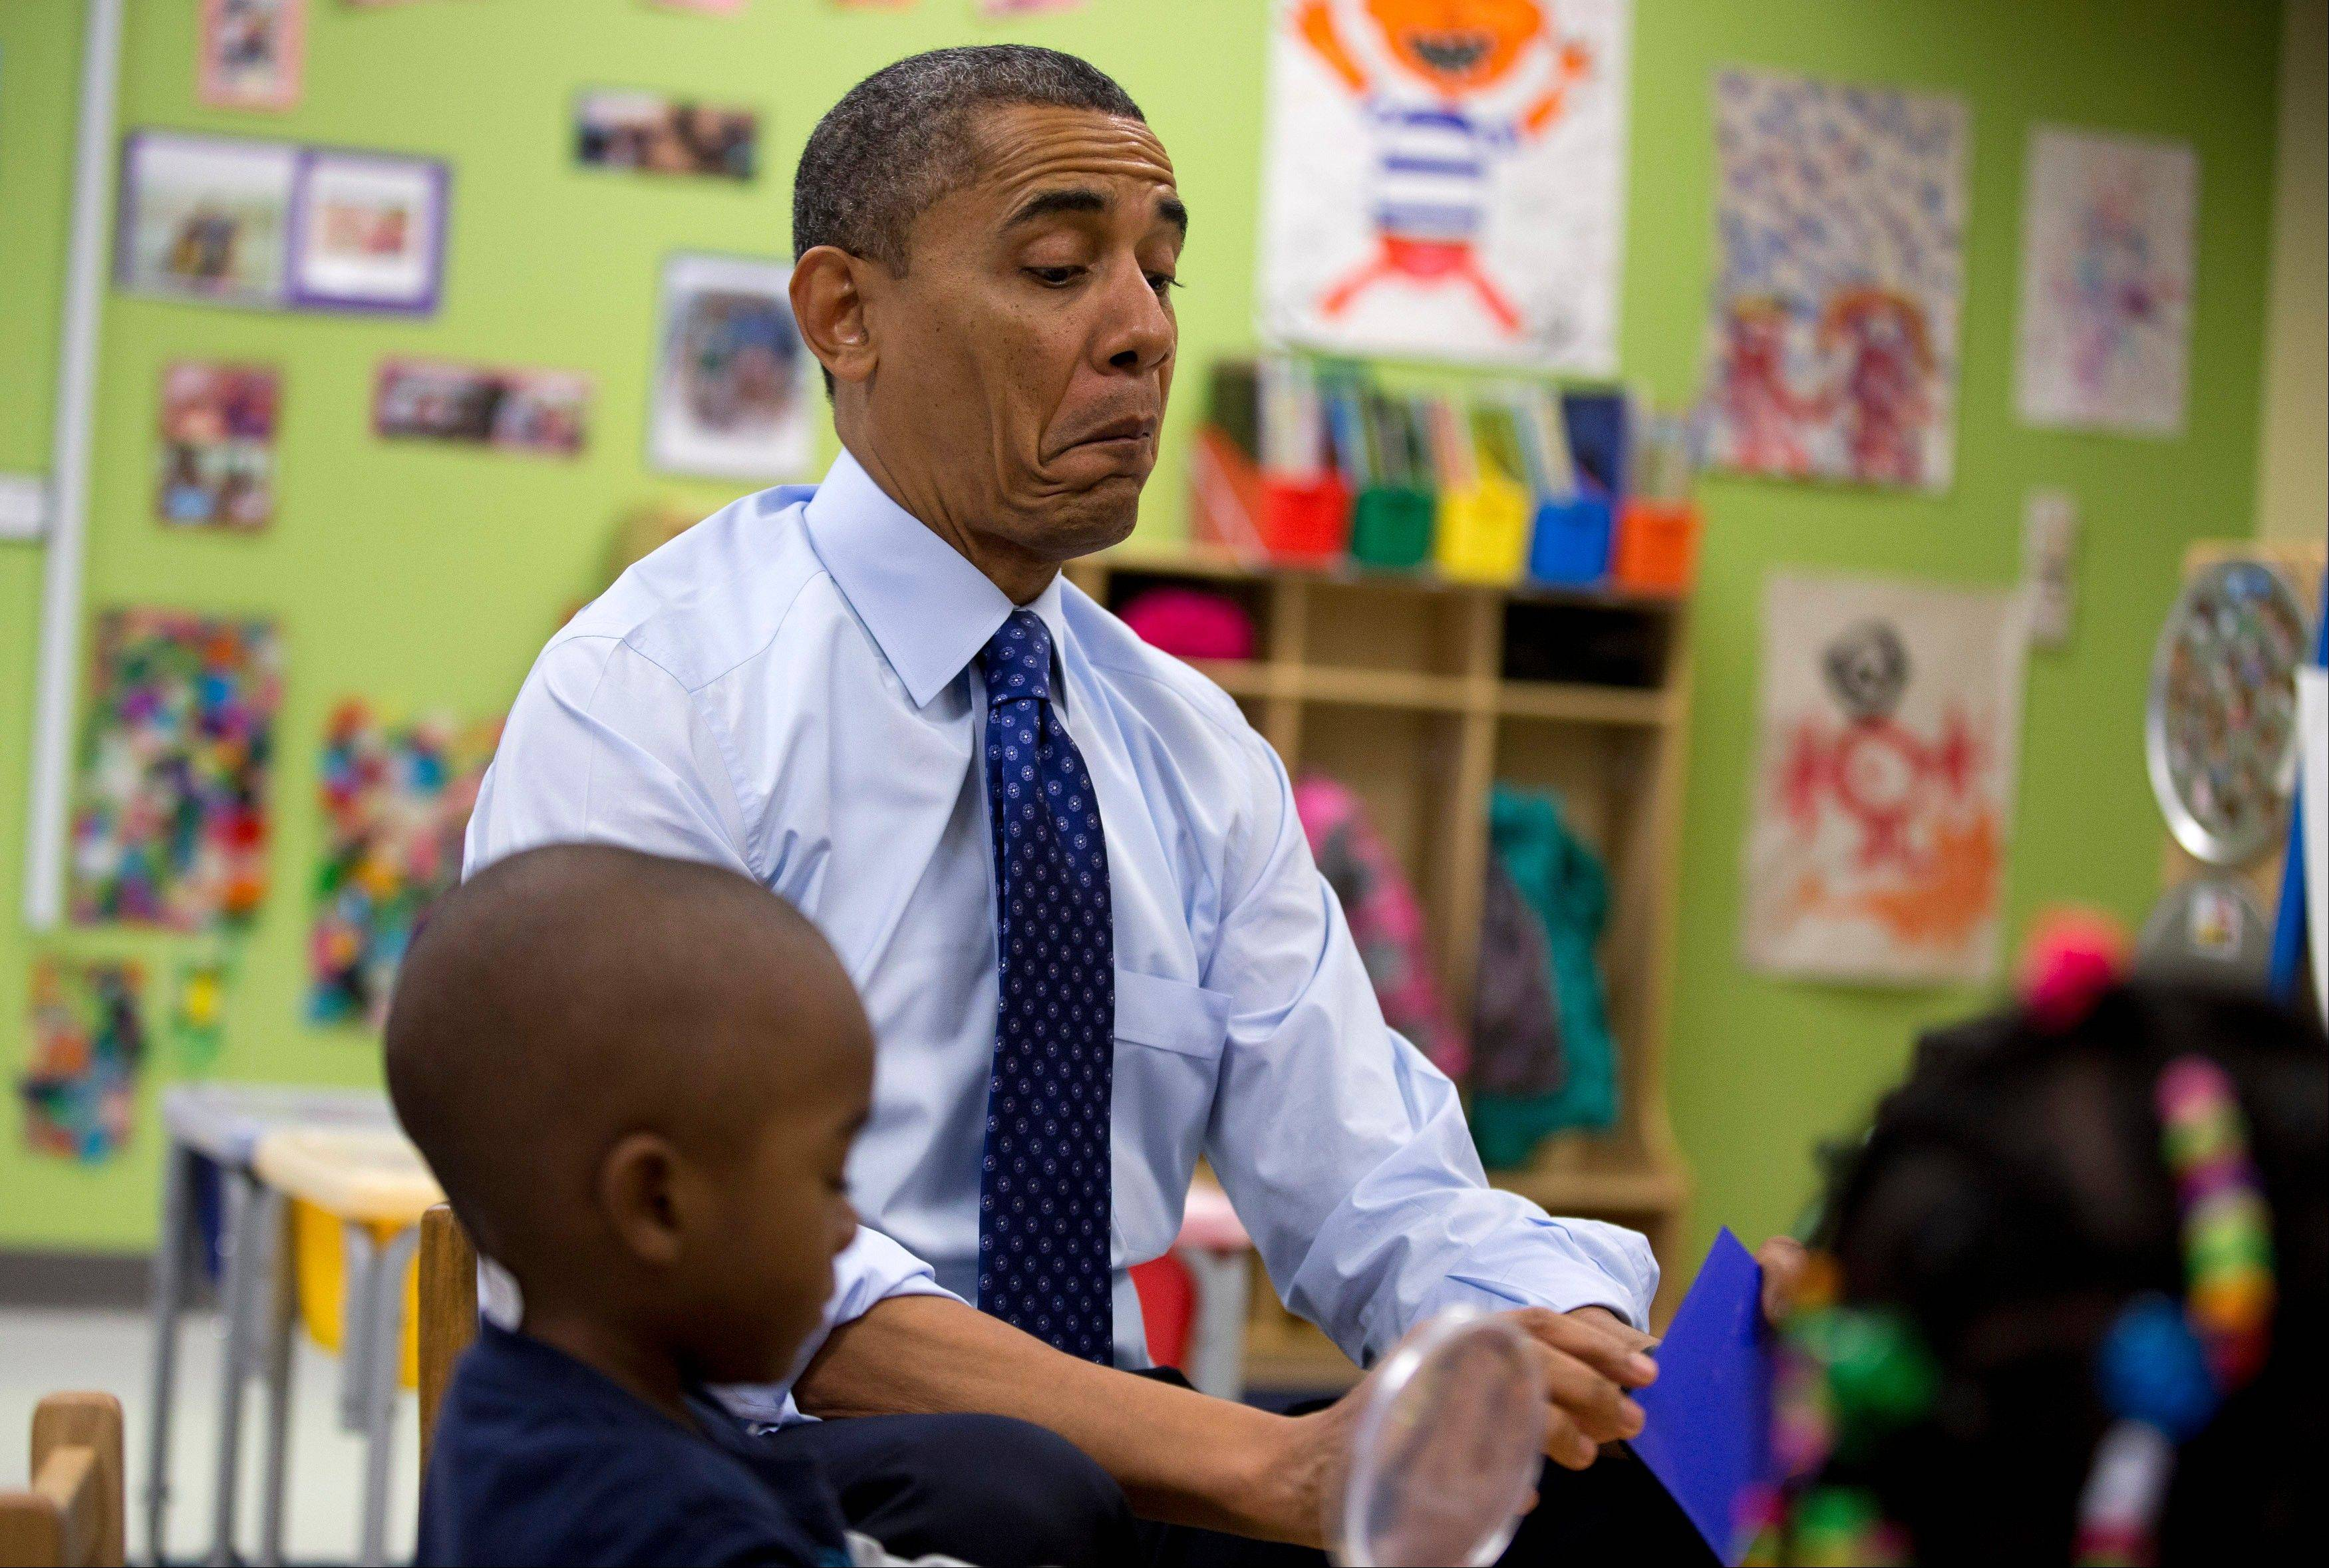 President Barack Obama reacts as he draws a card Thursday during a learning game during a visit to a pre-kindergarten classroom at College Heights Early Childhood Learning Center in Decatur, Ga.